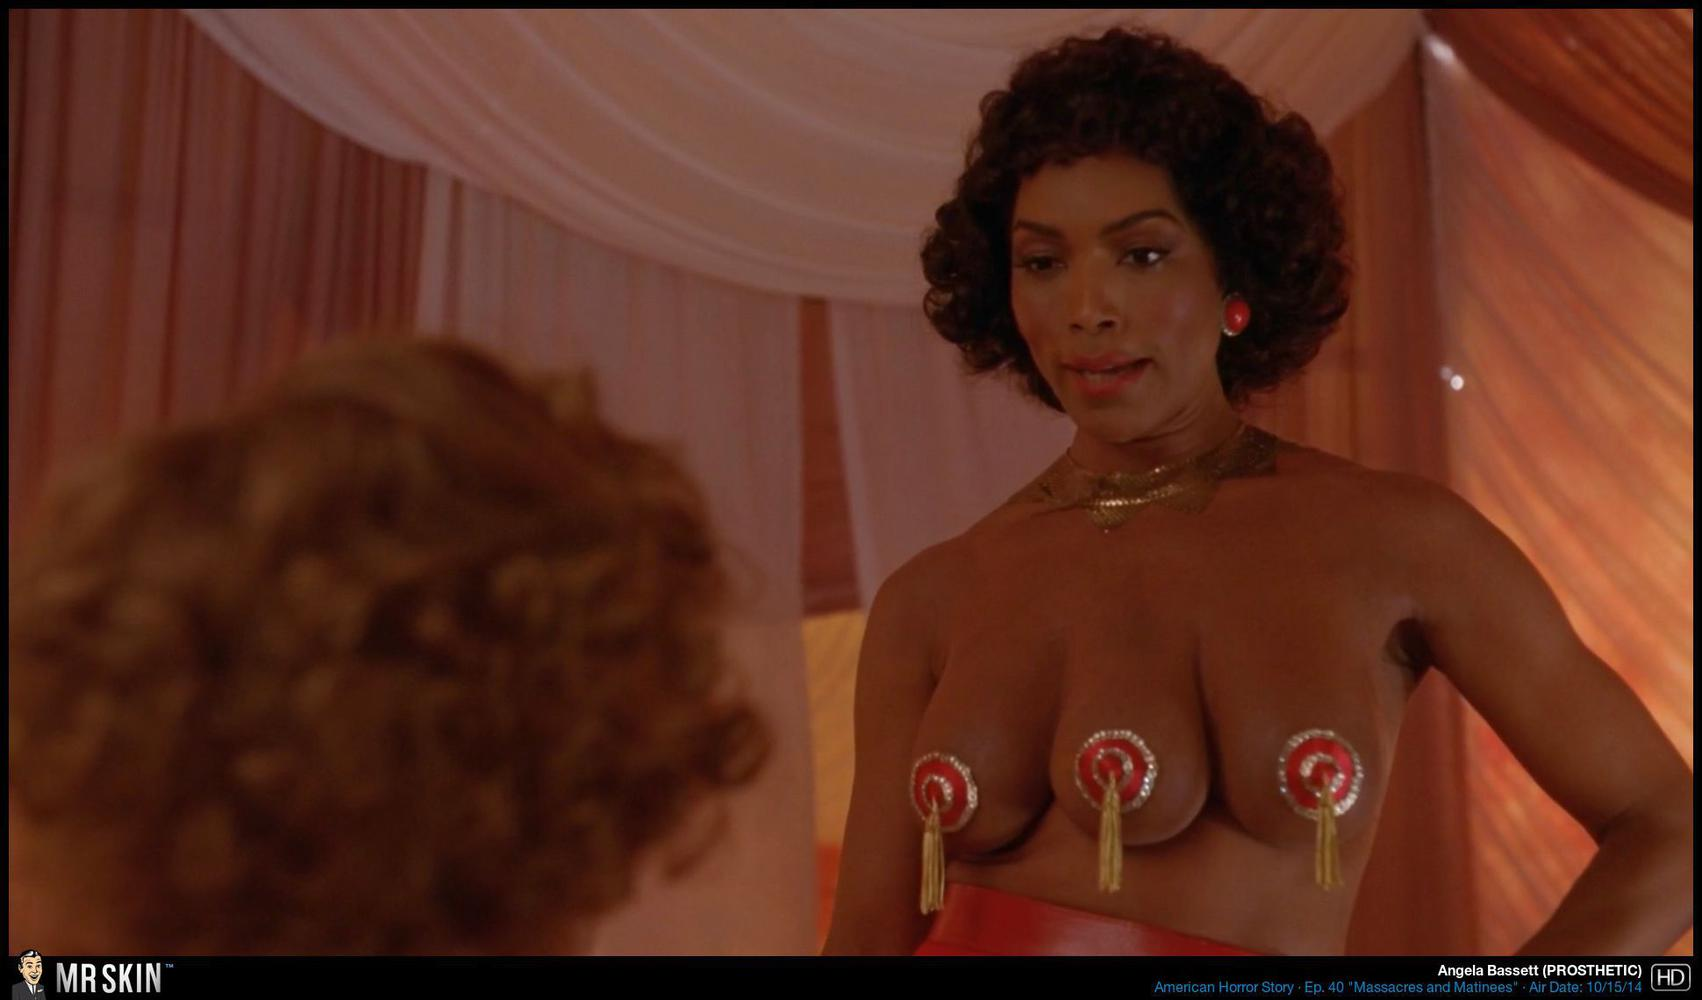 woman-angela-bassett-naked-in-thong-cock-sexy